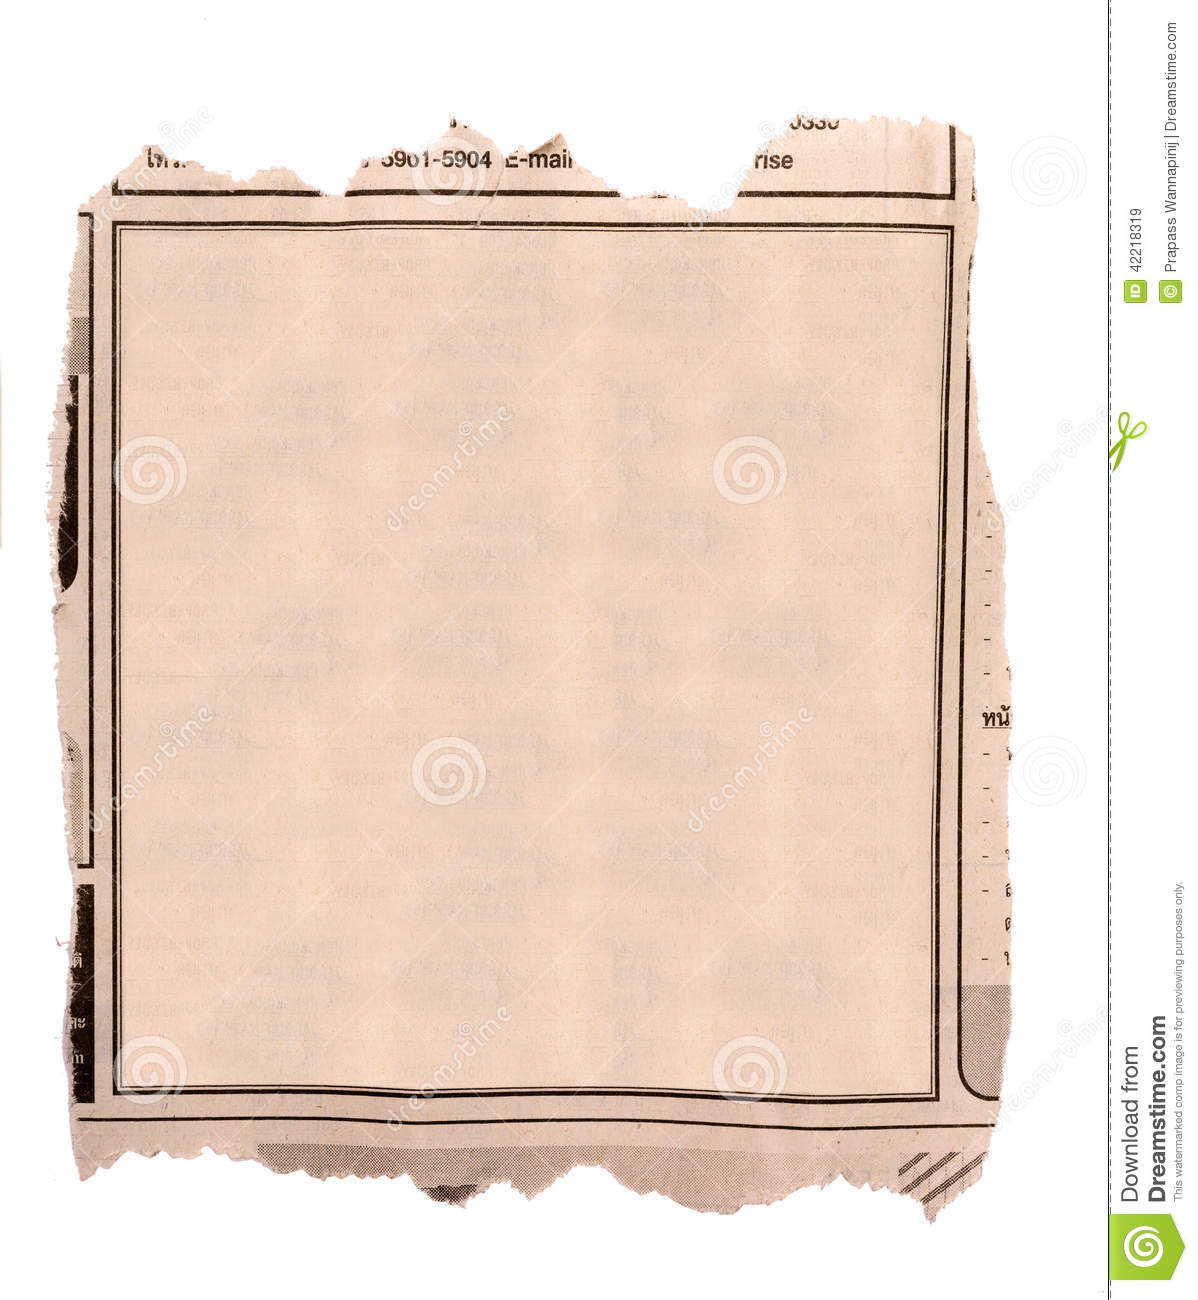 Blank Block Of Old Newspaper Advertise Stock Image